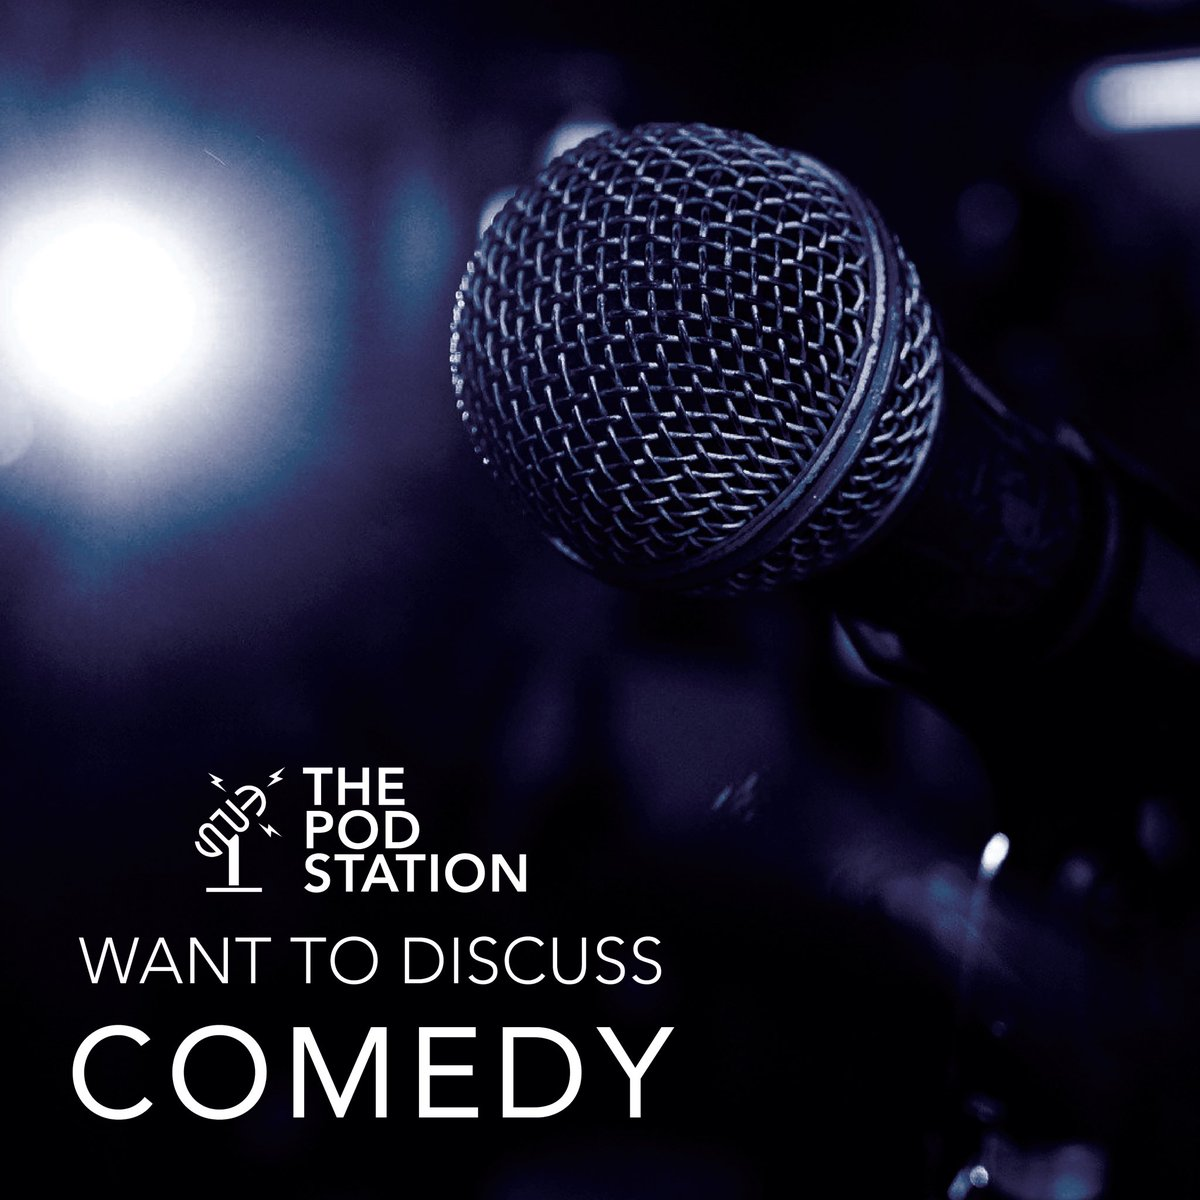 We have created a range of packages to enable you to have your own podcast show! Check them out at http://thepodstation.co.uk/station-packages/becoming-a-podcaster …  #thepodstation #podcasts #podcasting #podcaststudio #podcastaddict #PodcastJunkie #podcastshow #PodcastSeries #comedy #comedyshow #comedypodcastpic.twitter.com/SHlvko8qhU